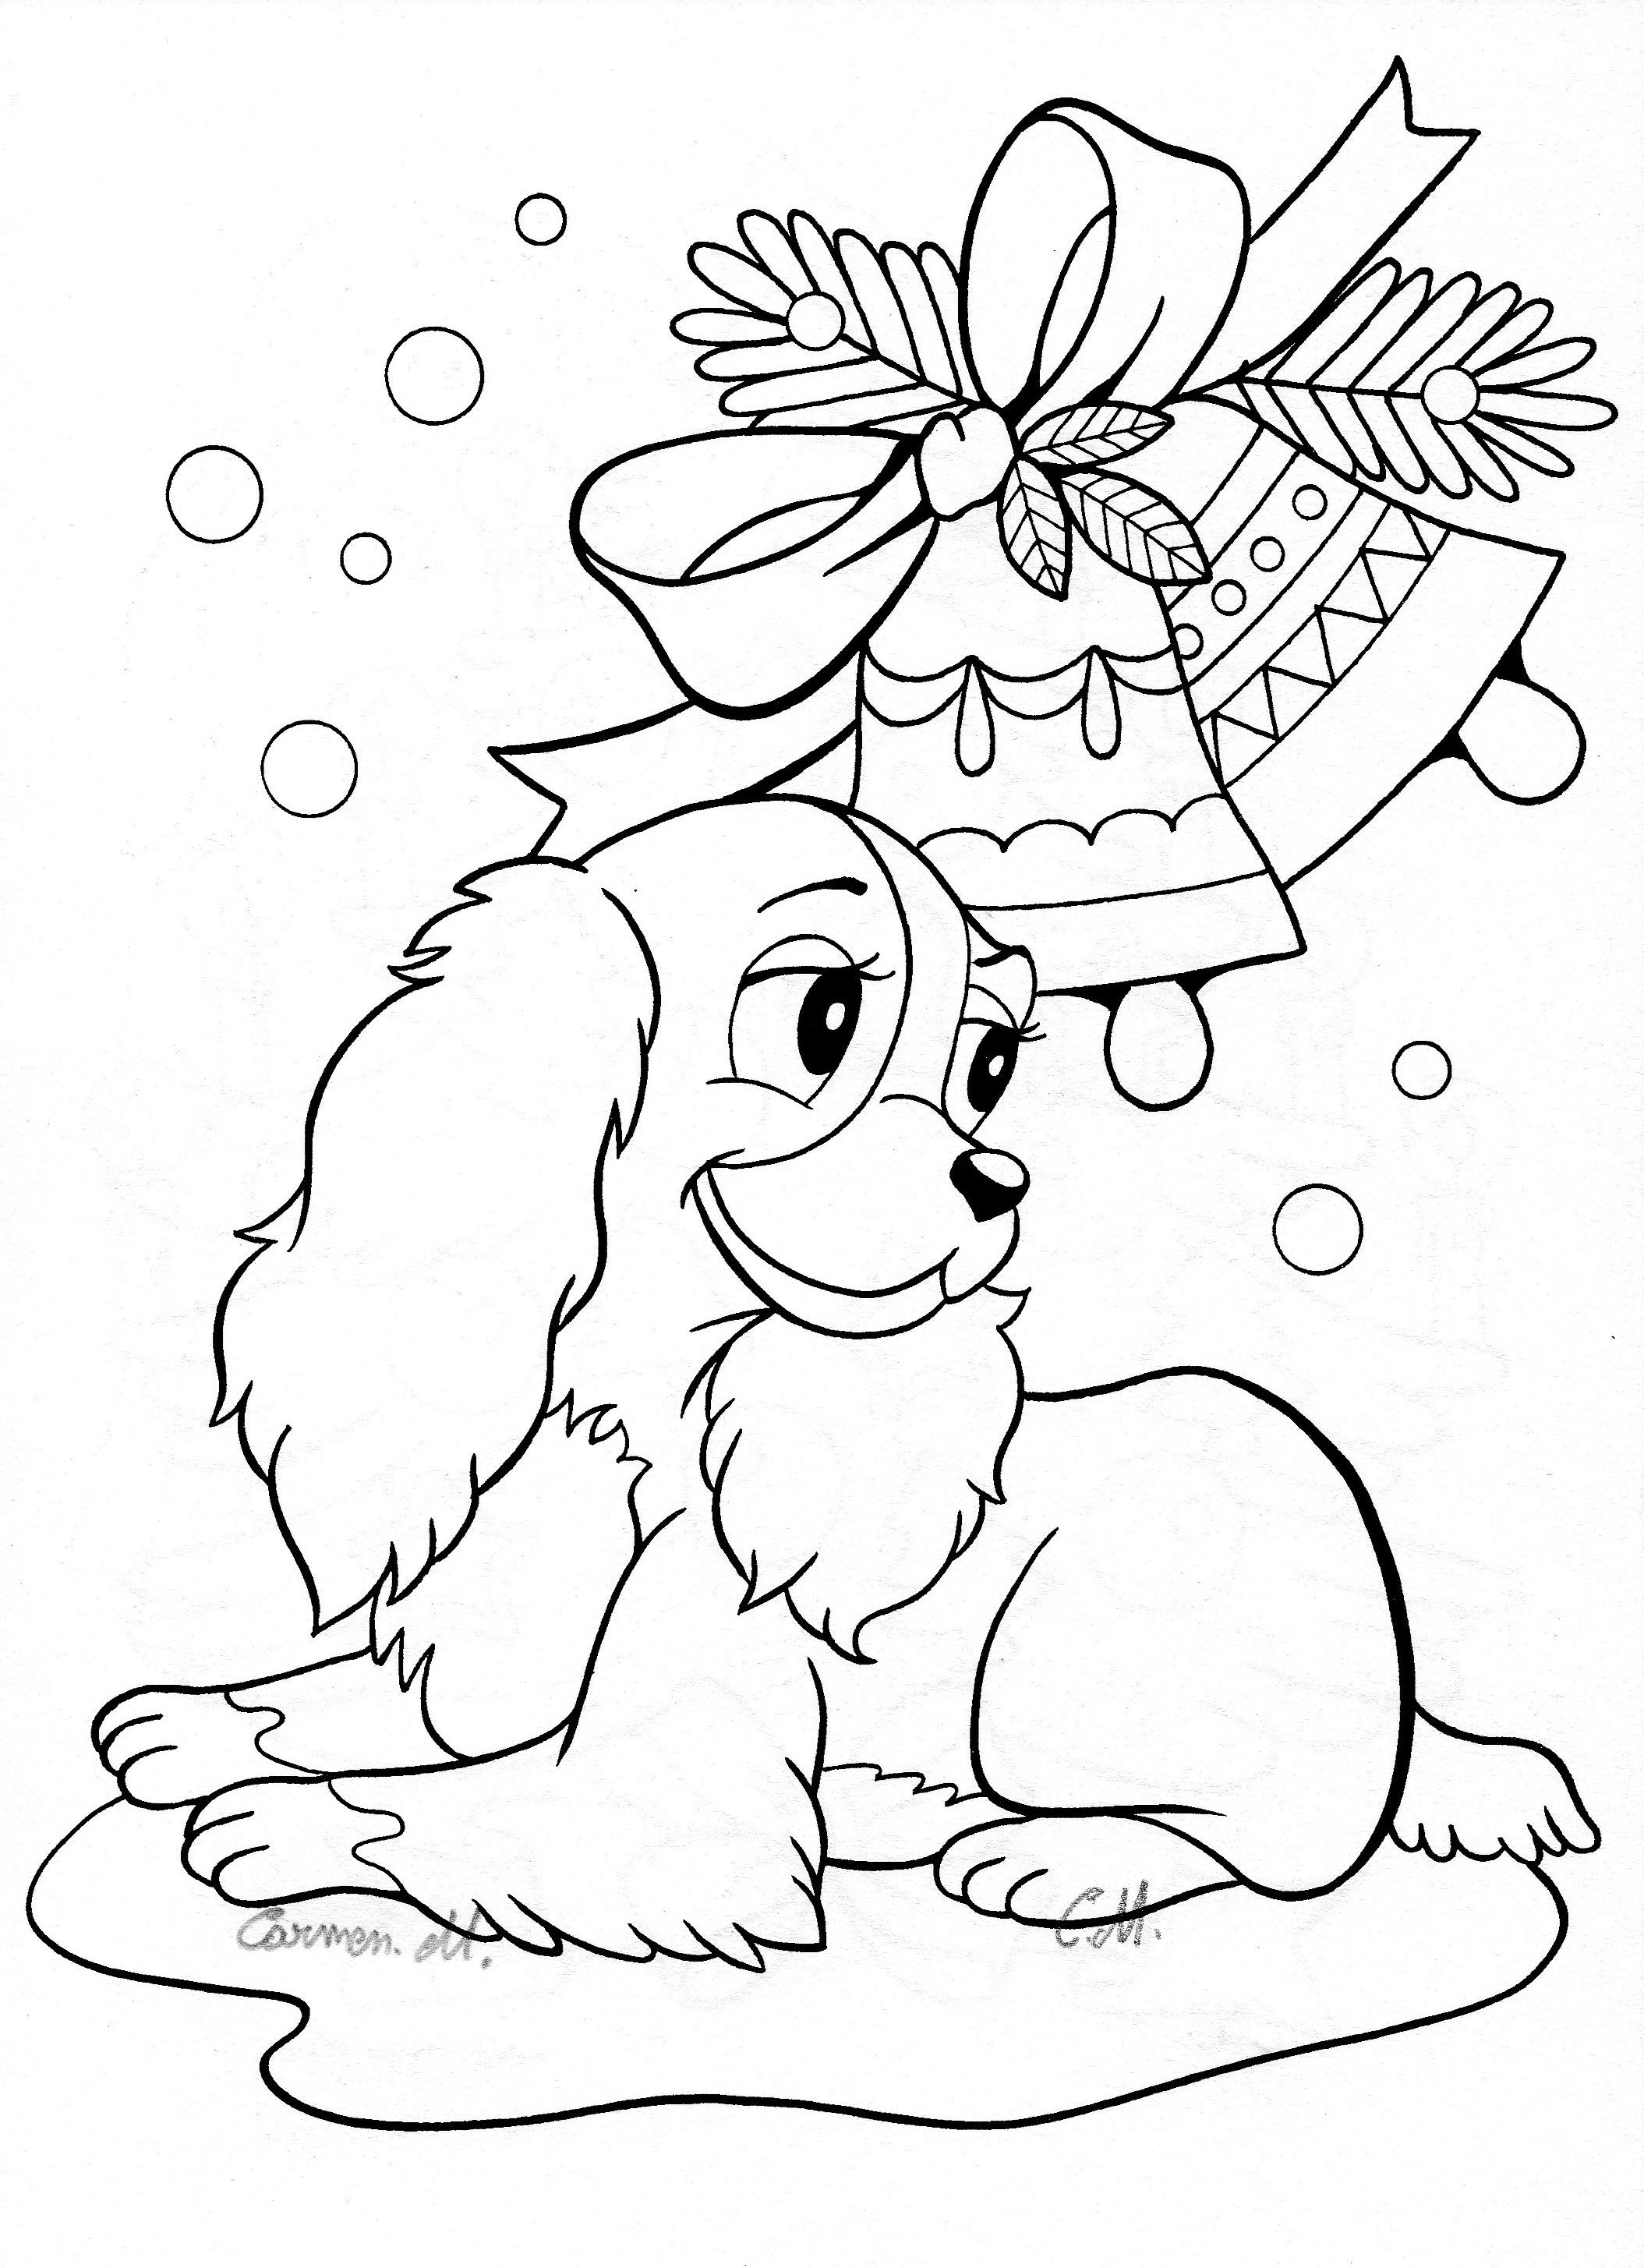 toddler printable coloring pages 9 puppy coloring pages jpg ai illustrator download toddler pages printable coloring